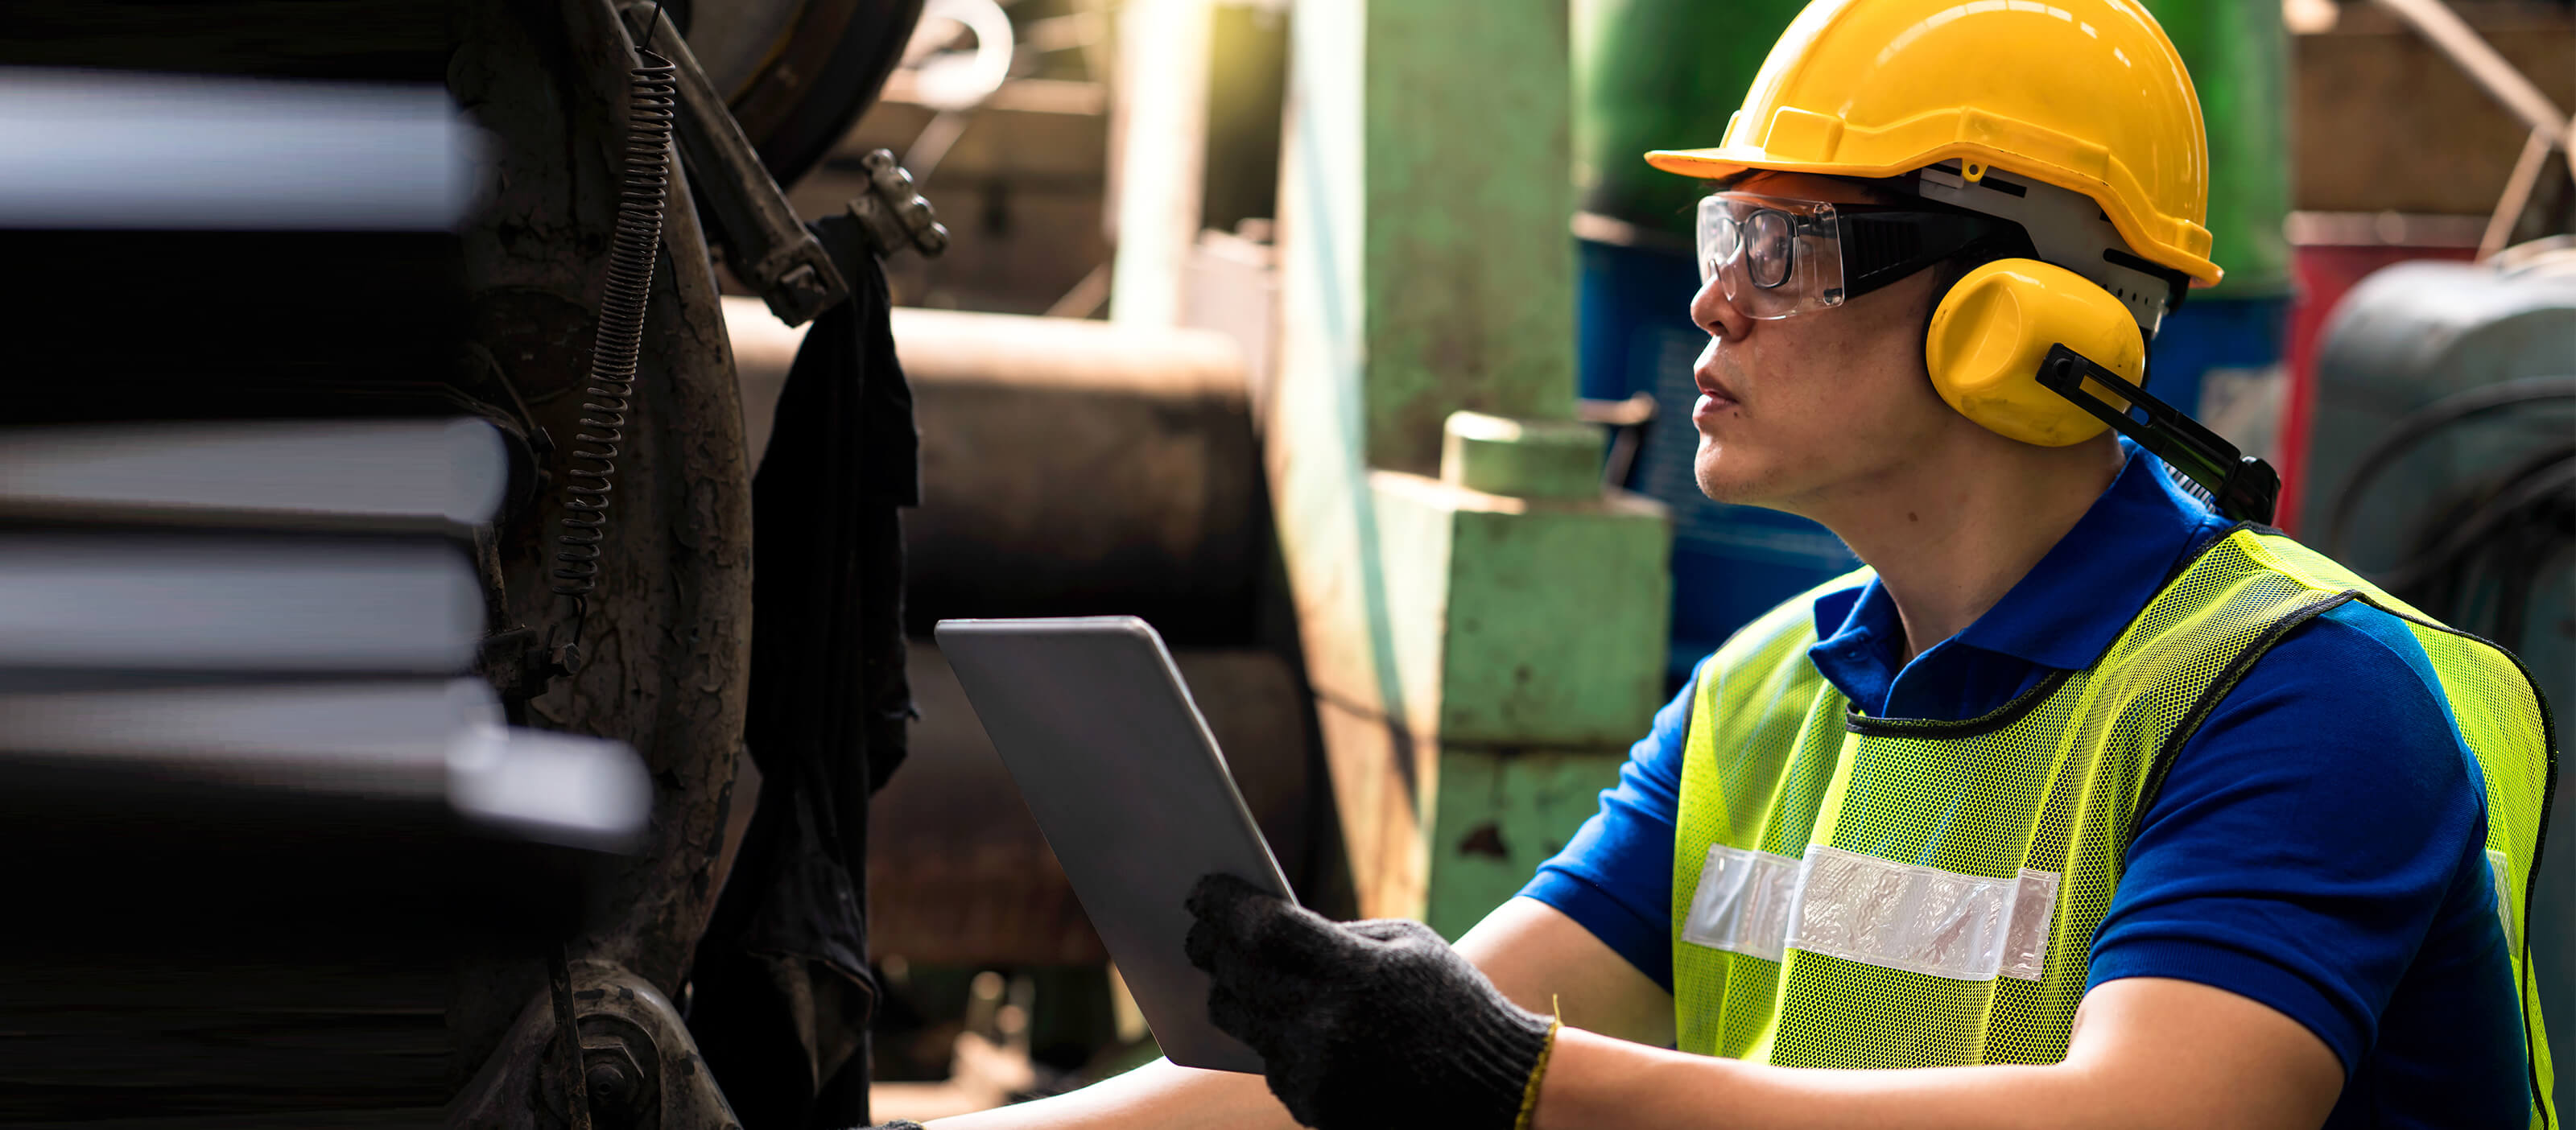 Industrial engineer using GE Digital automation software